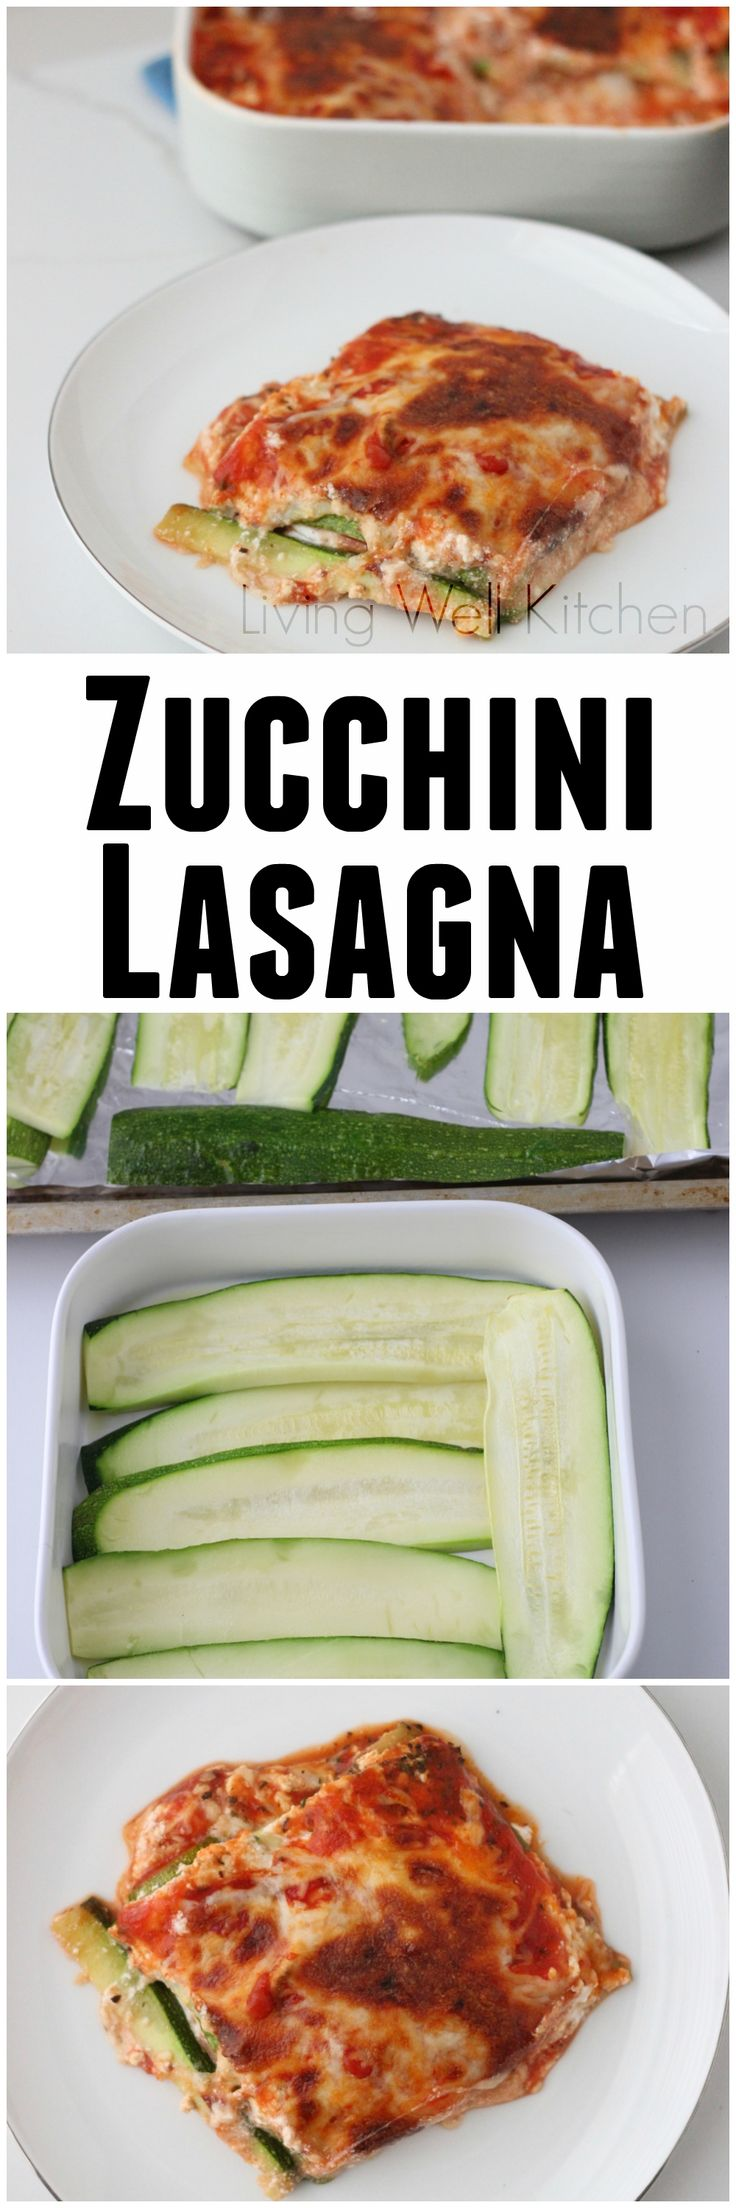 A fresh, summer take on a comfort food classic: Zucchini Lasagna from Living Well Kitchen @memeinge